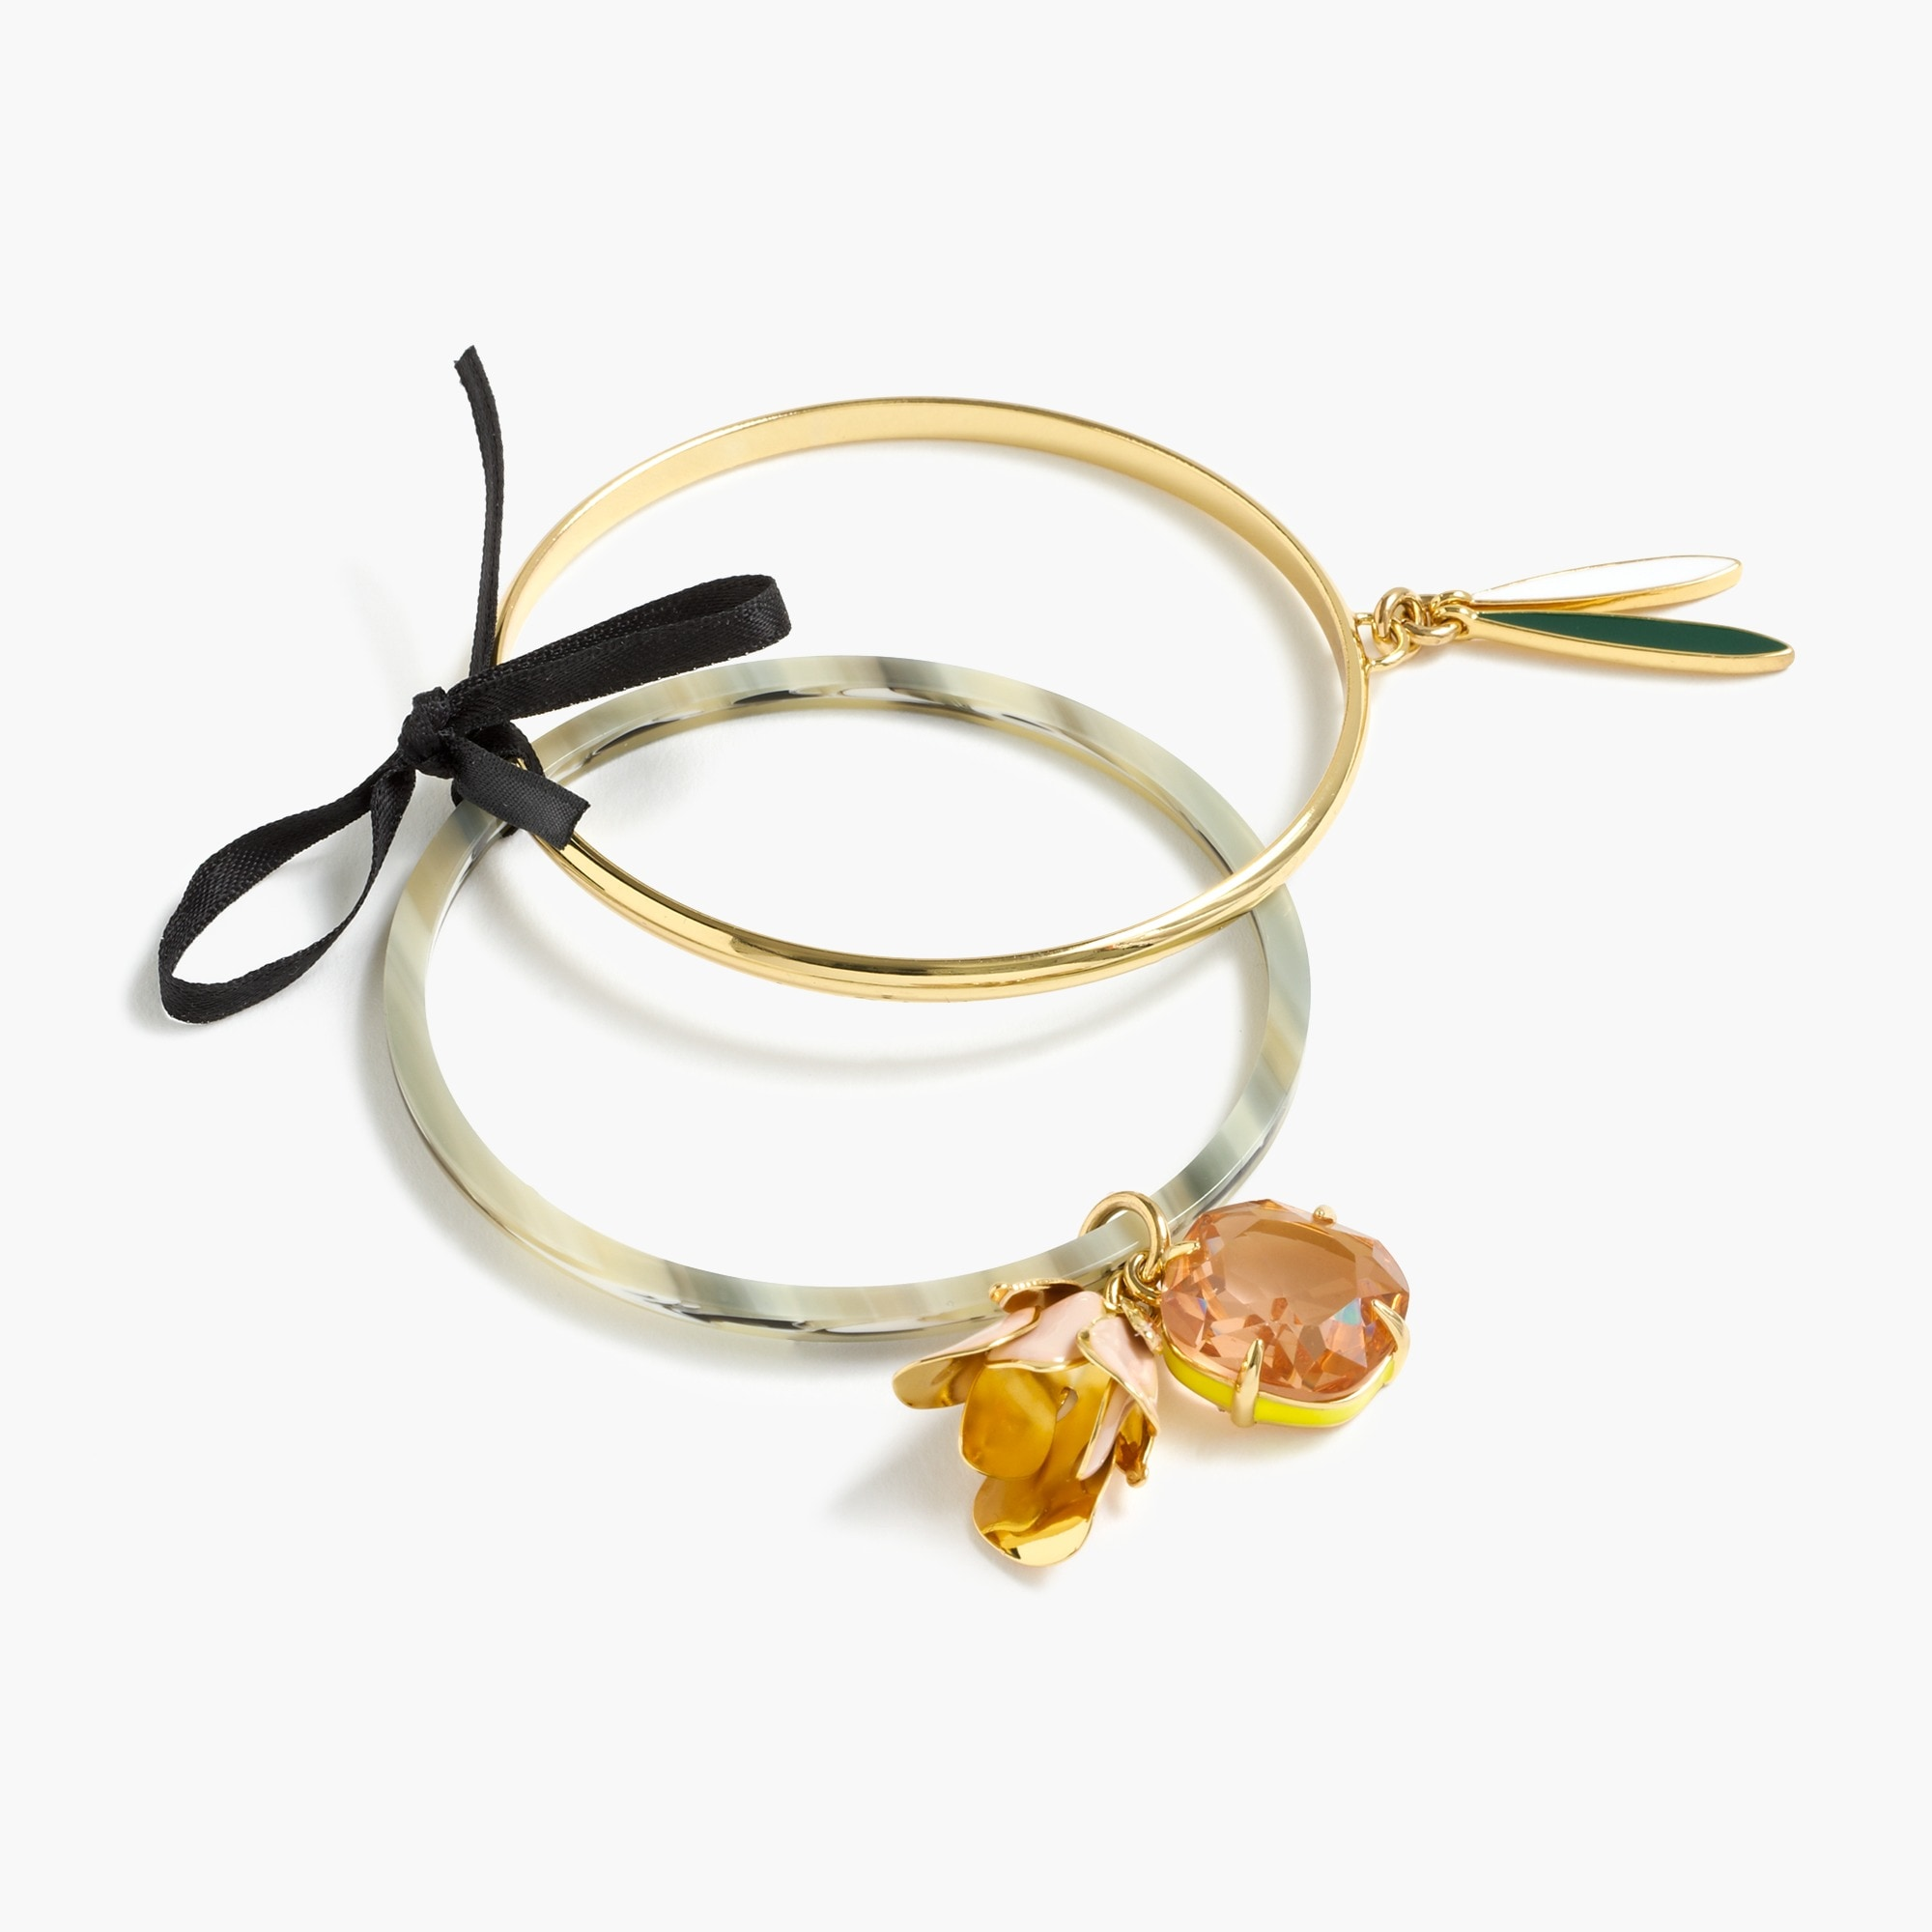 Flower charm bangle set